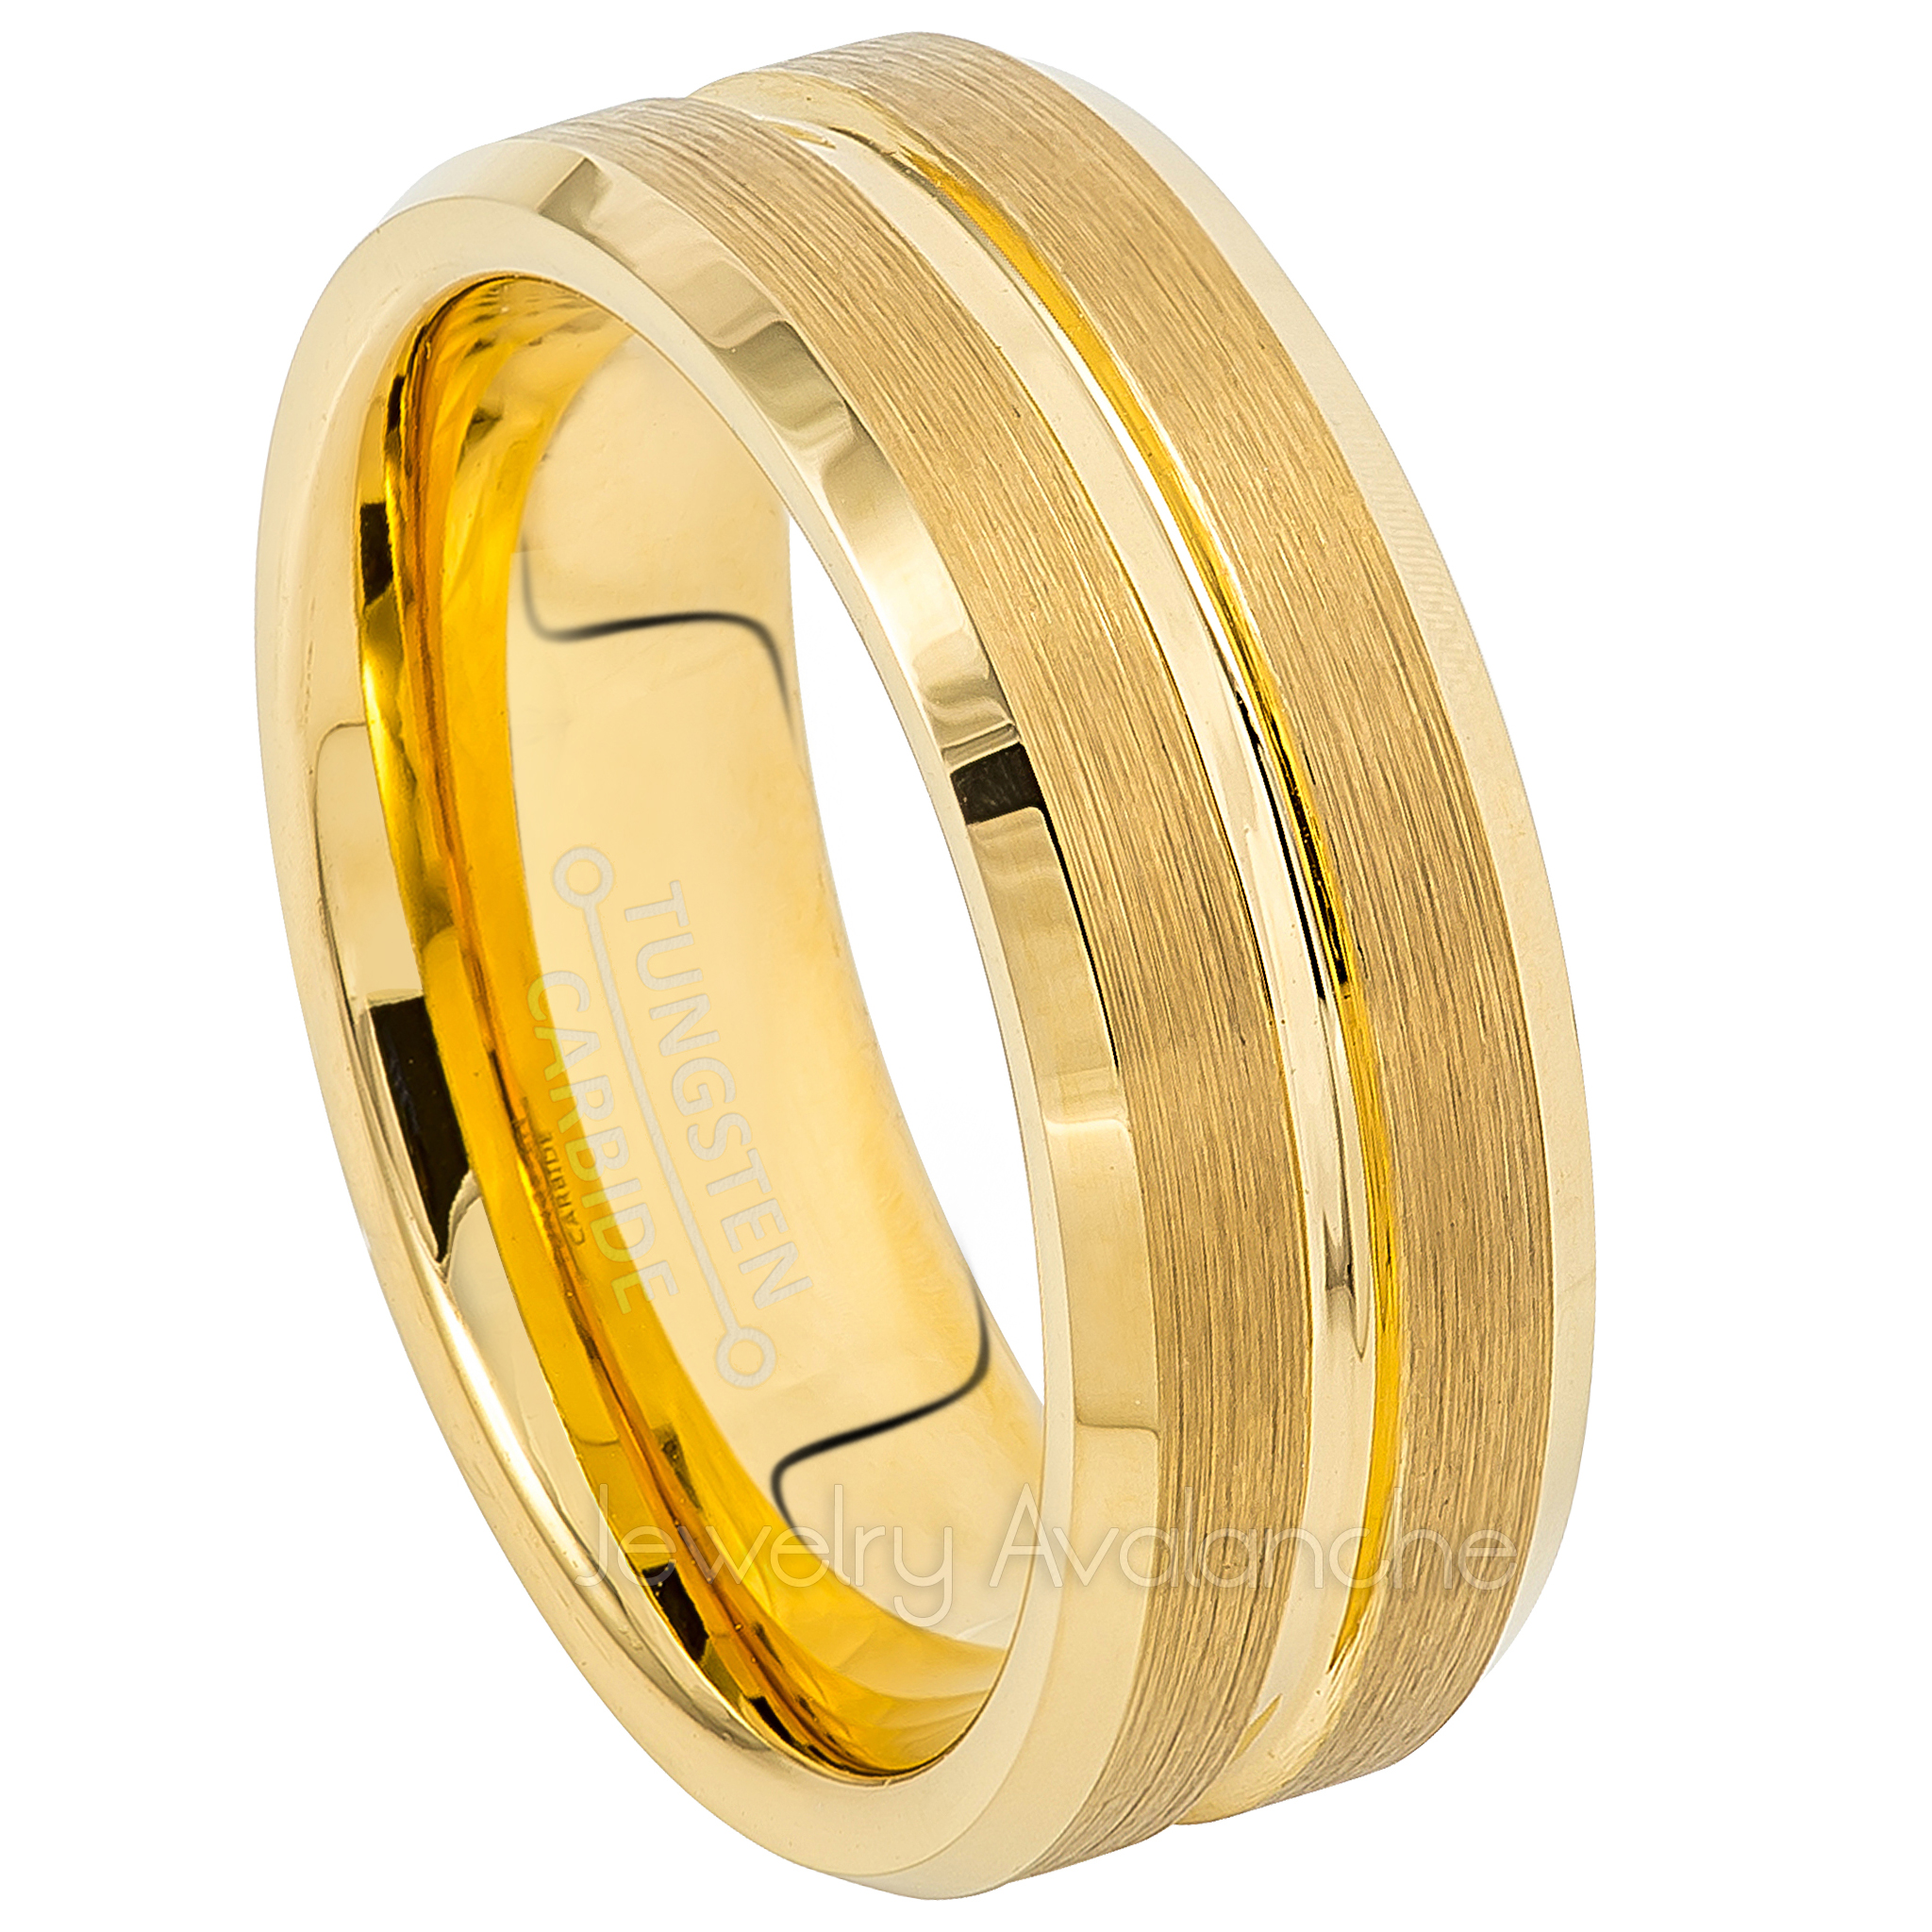 88137acffd0f2 Men's Beveled Tungsten Wedding Band - 8mm Yellow Gold Plated Comfort Fit  Tungsten Carbide Ring - Anniversary Band TN724PL